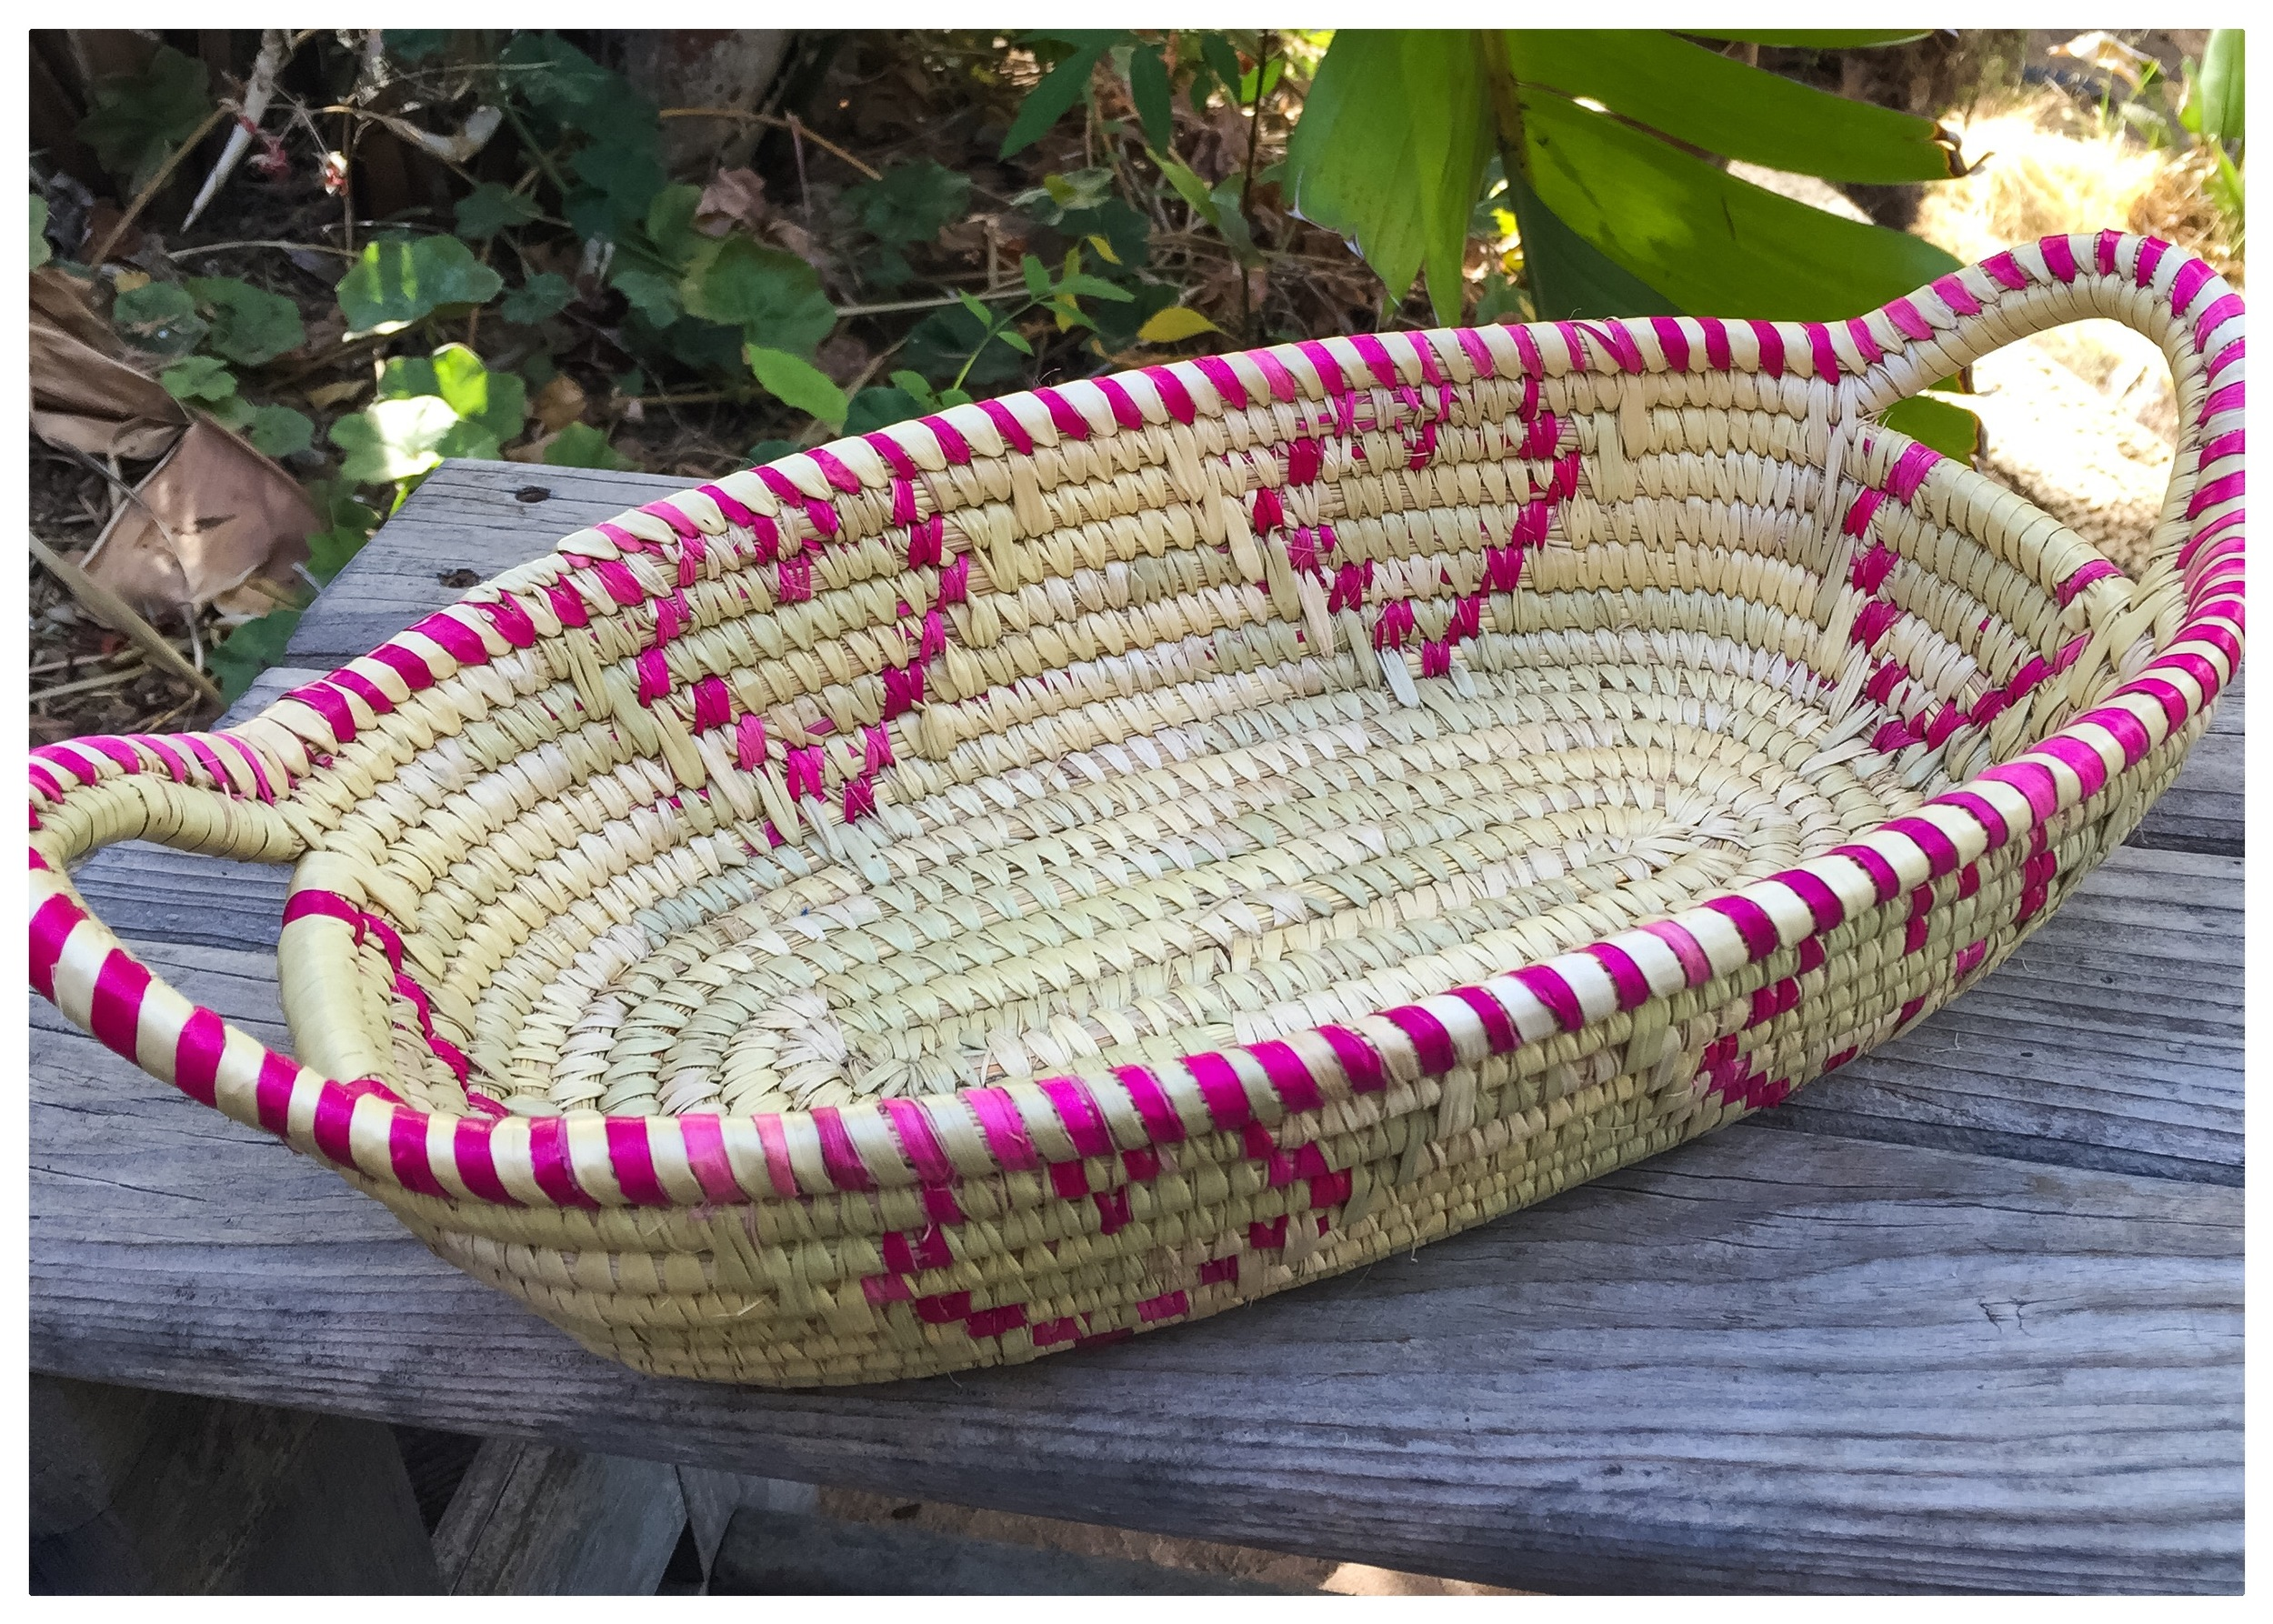 Handmade by women in Tanzania, this basket is as functional as it is beautiful. Use it as a serving basket on the dining table or to hold your stationery collection, you'll be reminded of the women who were given meaningful employment when this basket was purchased!